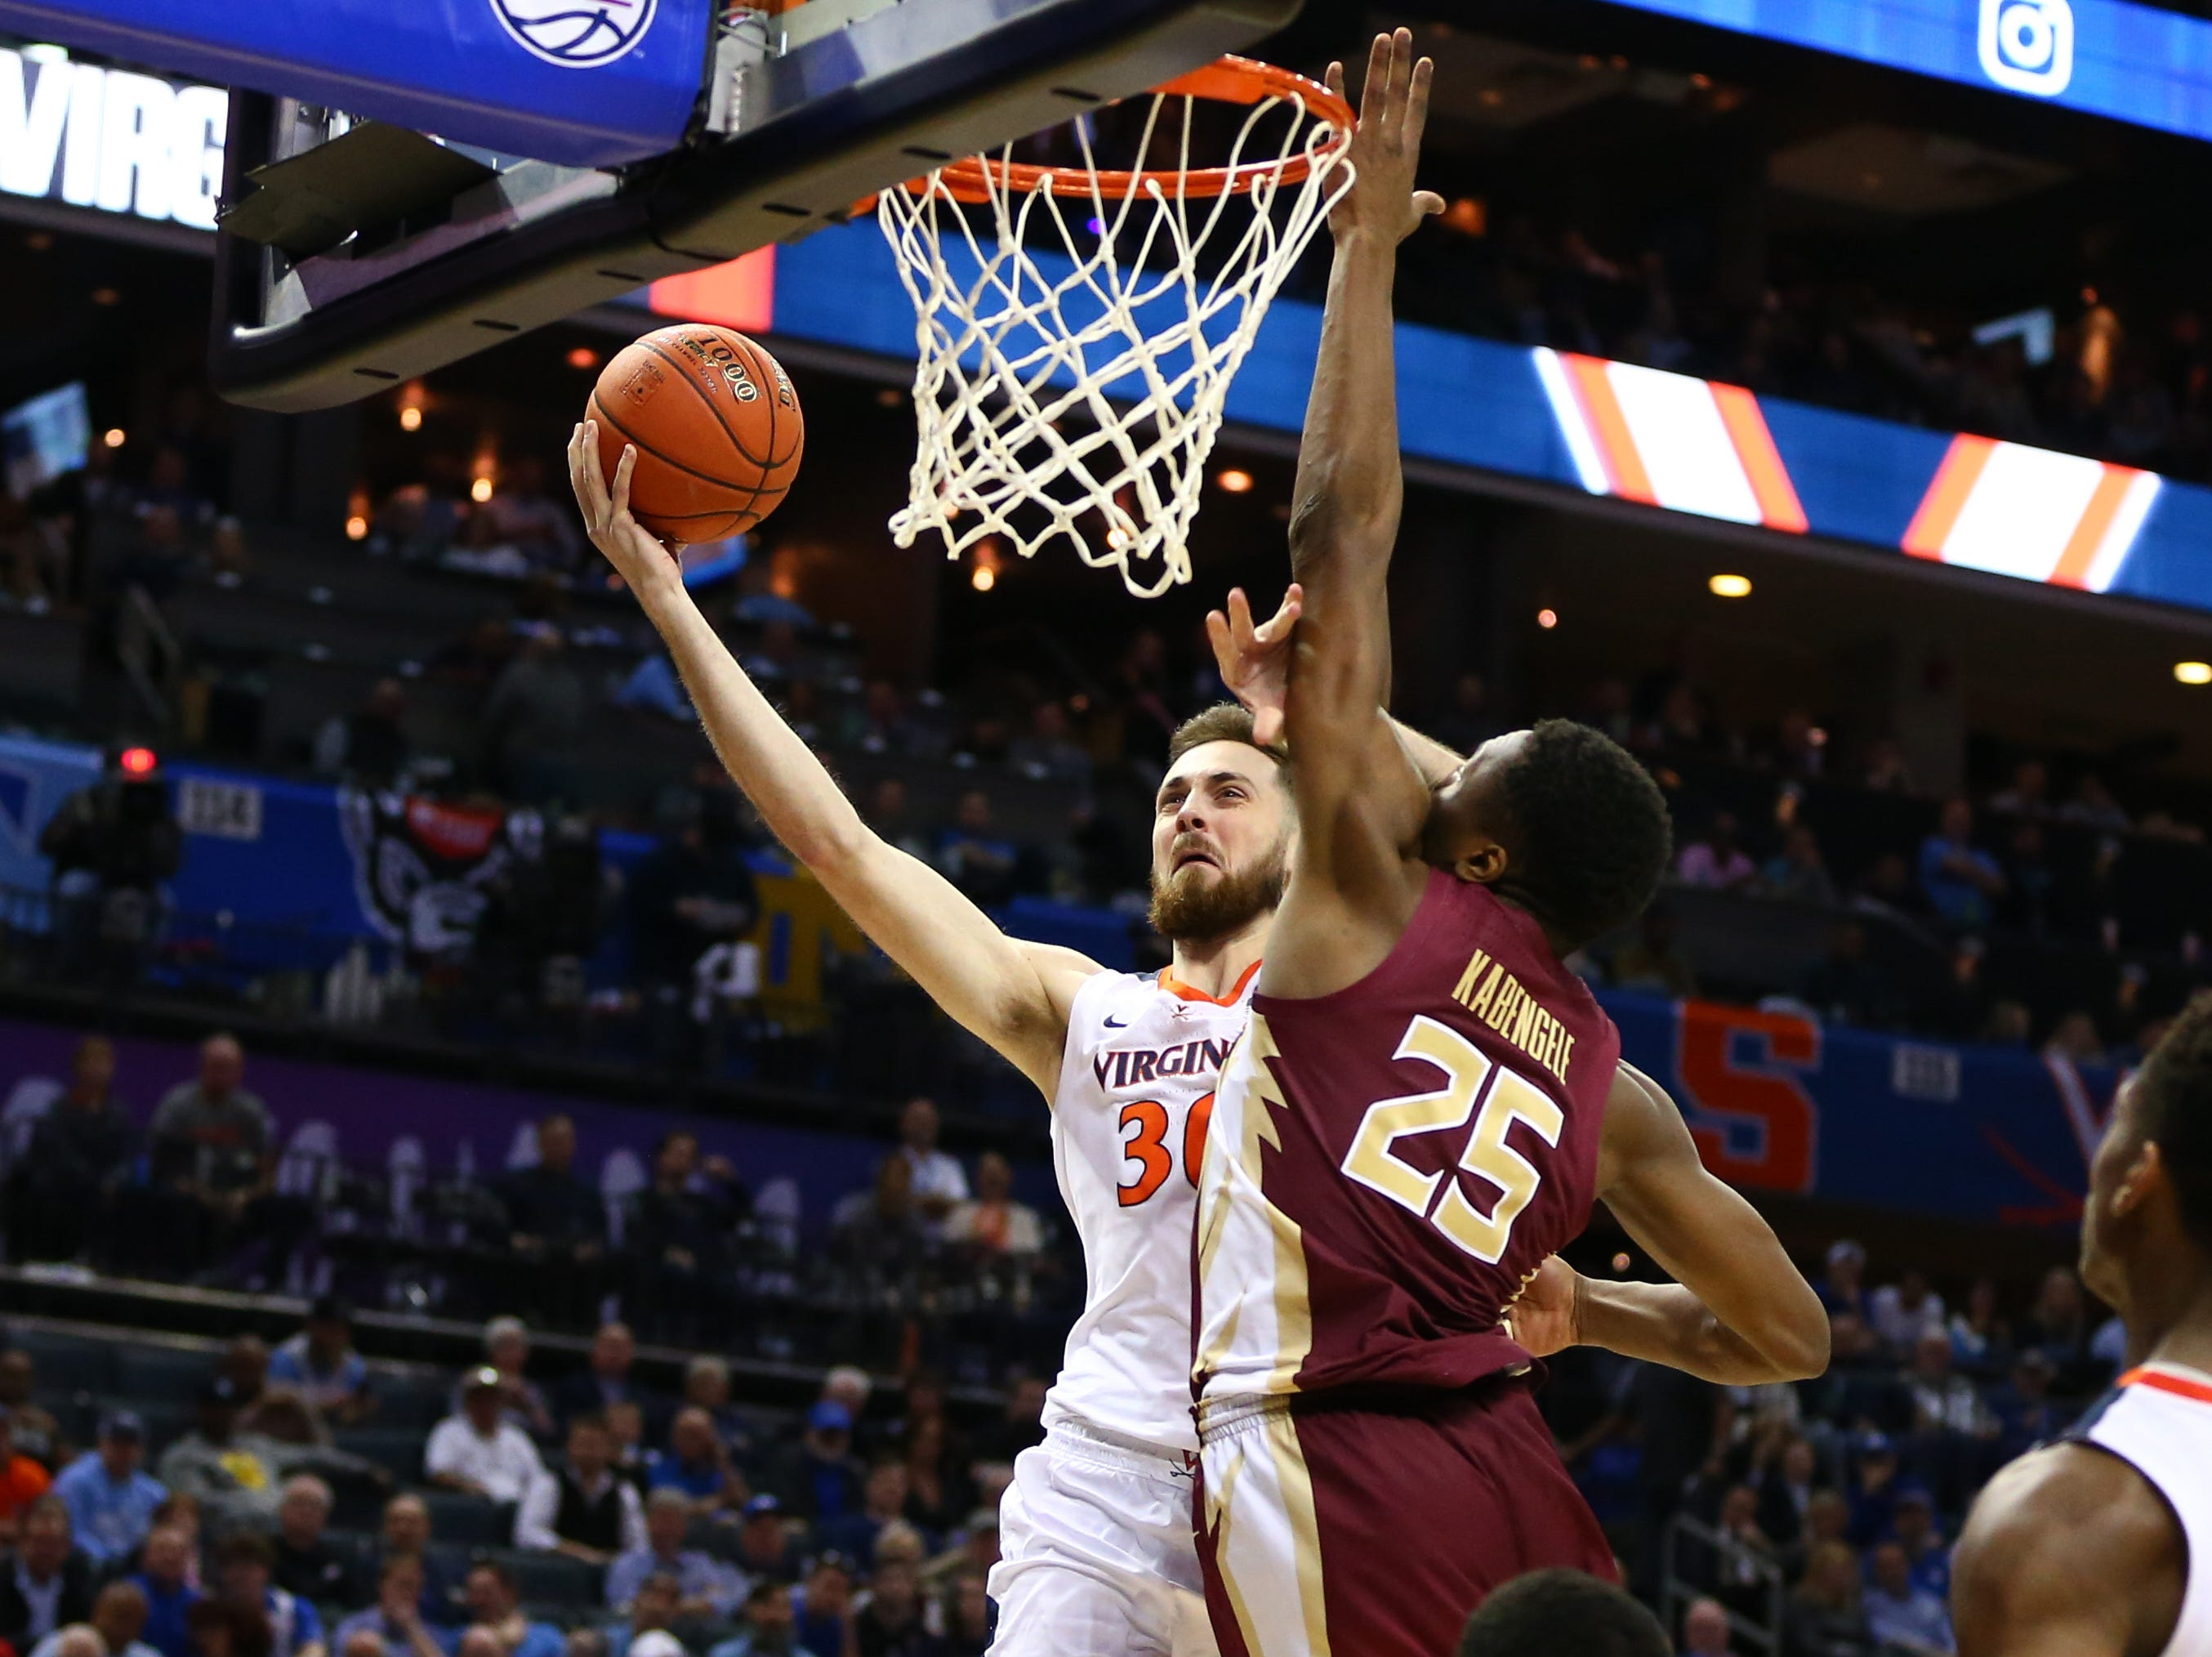 Mar 15, 2019; Charlotte, NC, USA; Virginia Cavaliers forward Jay Huff (30) shoots the ball against Florida State Seminoles forward Mfiondu Kabengele (25) in the second half in the ACC conference tournament at Spectrum Center. Mandatory Credit: Jeremy Brevard-USA TODAY Sports